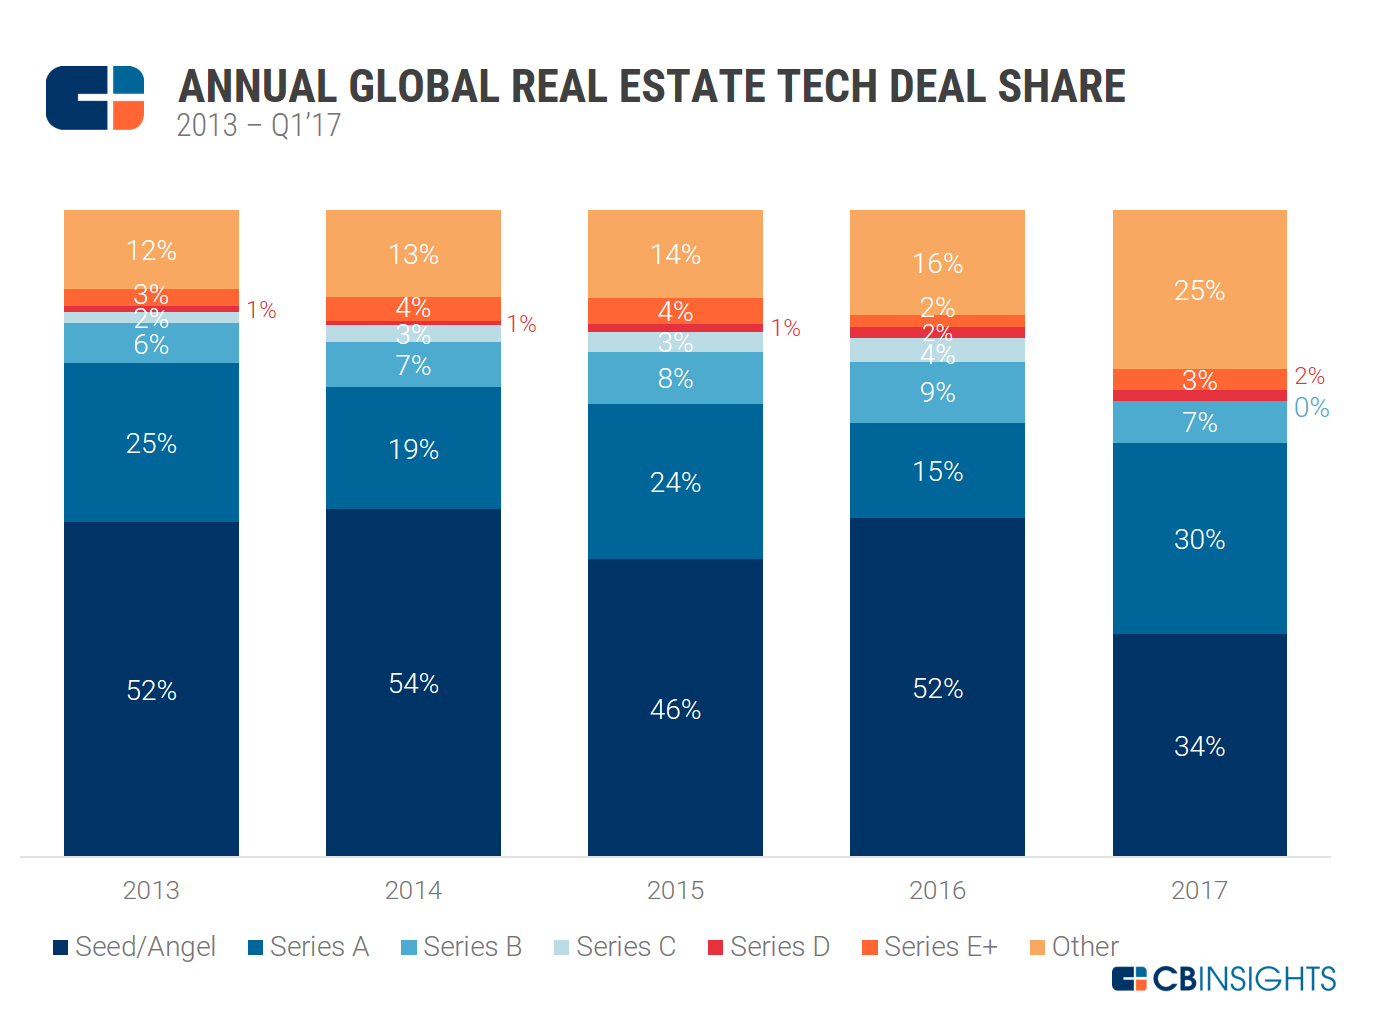 RE Tech Annual Deal Share 2013-Q1'17